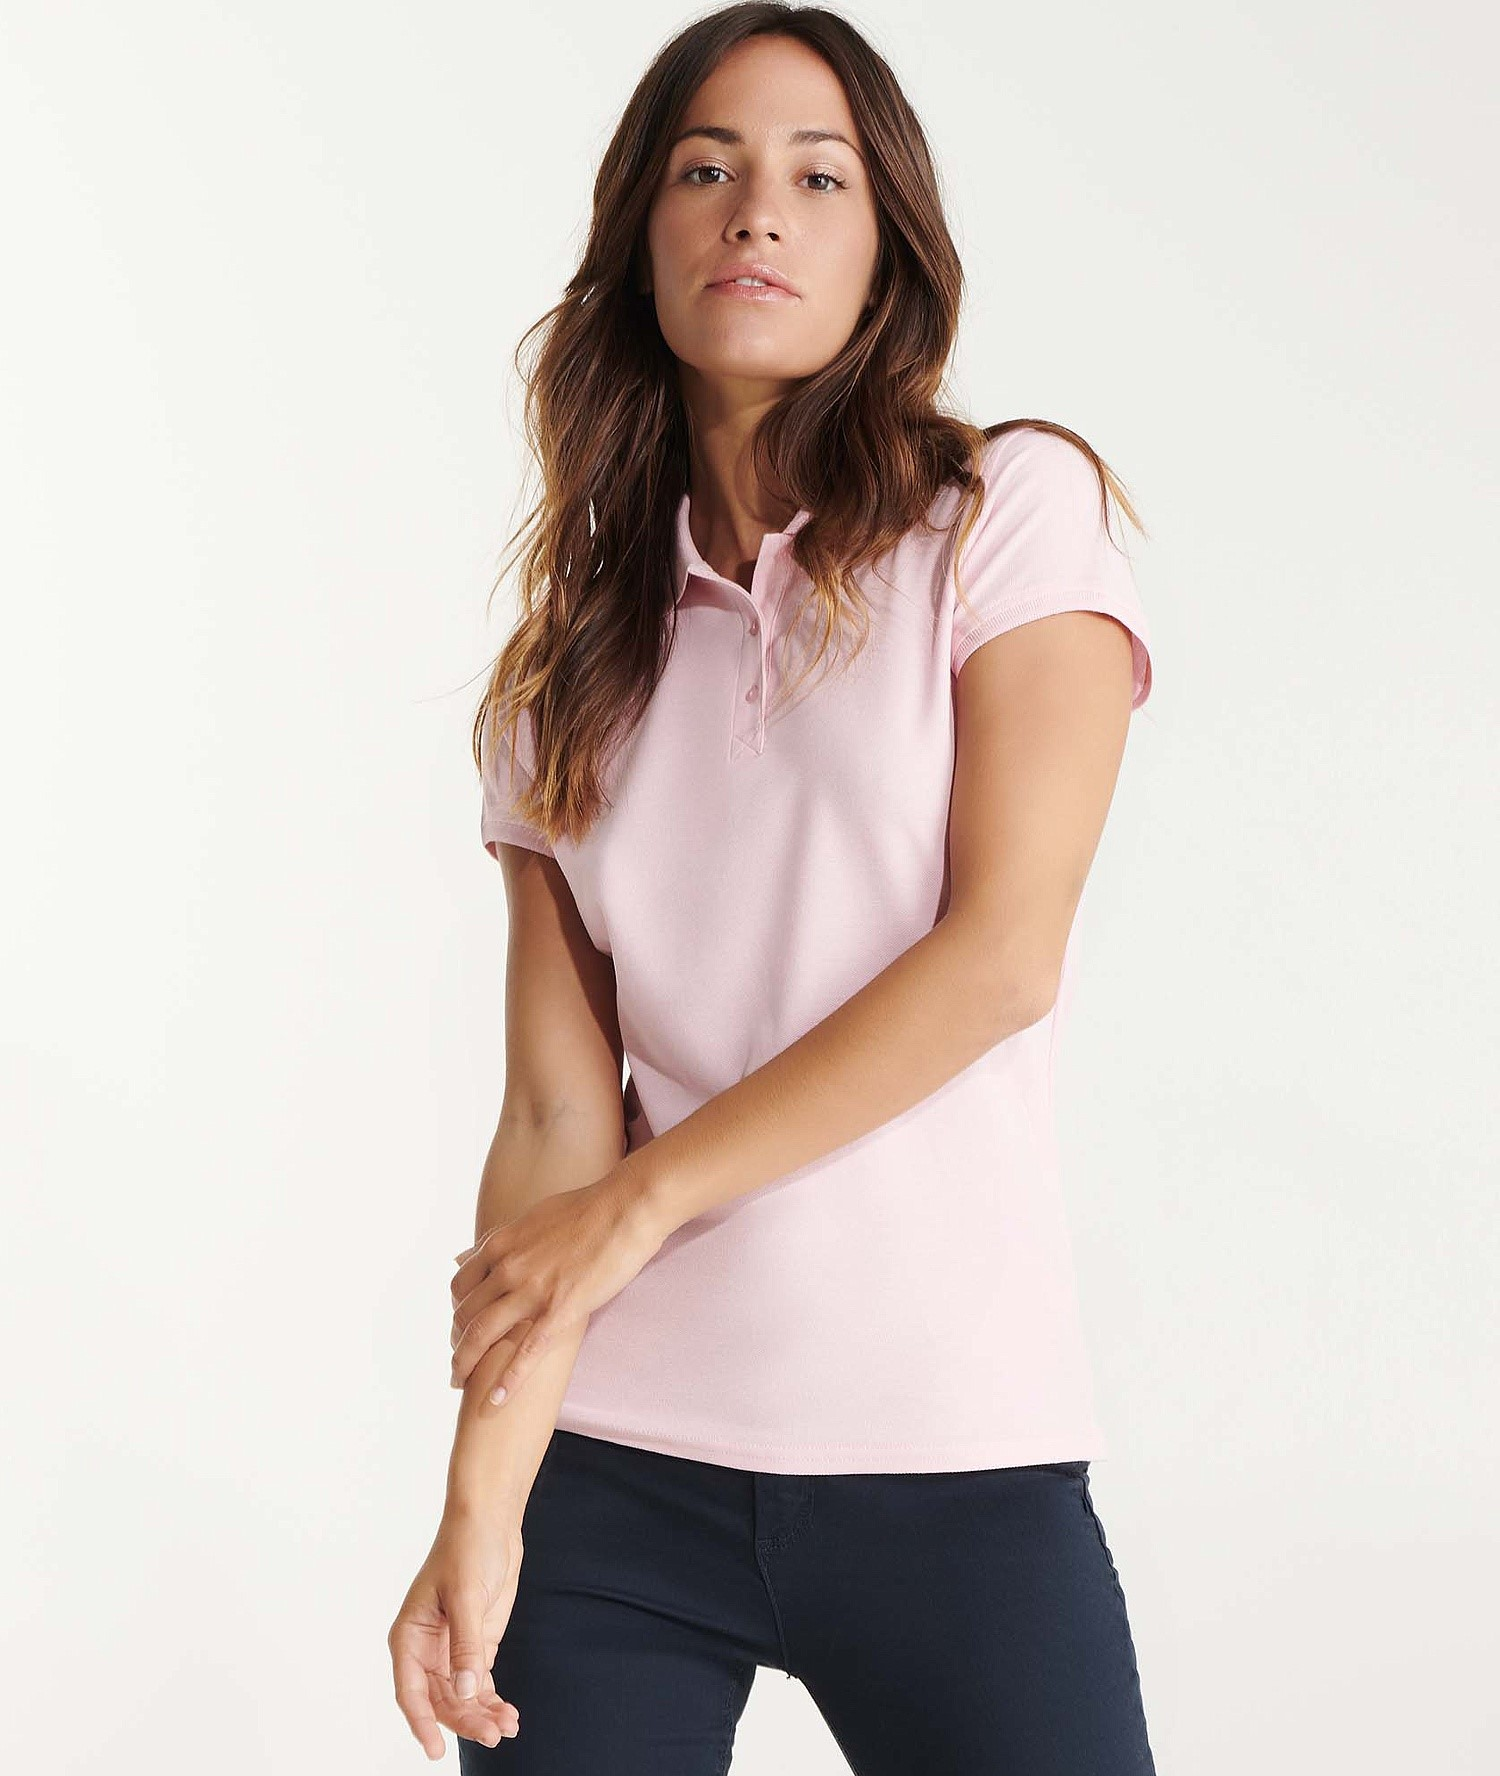 POLO SHIRT ROLY STAR WOMAN